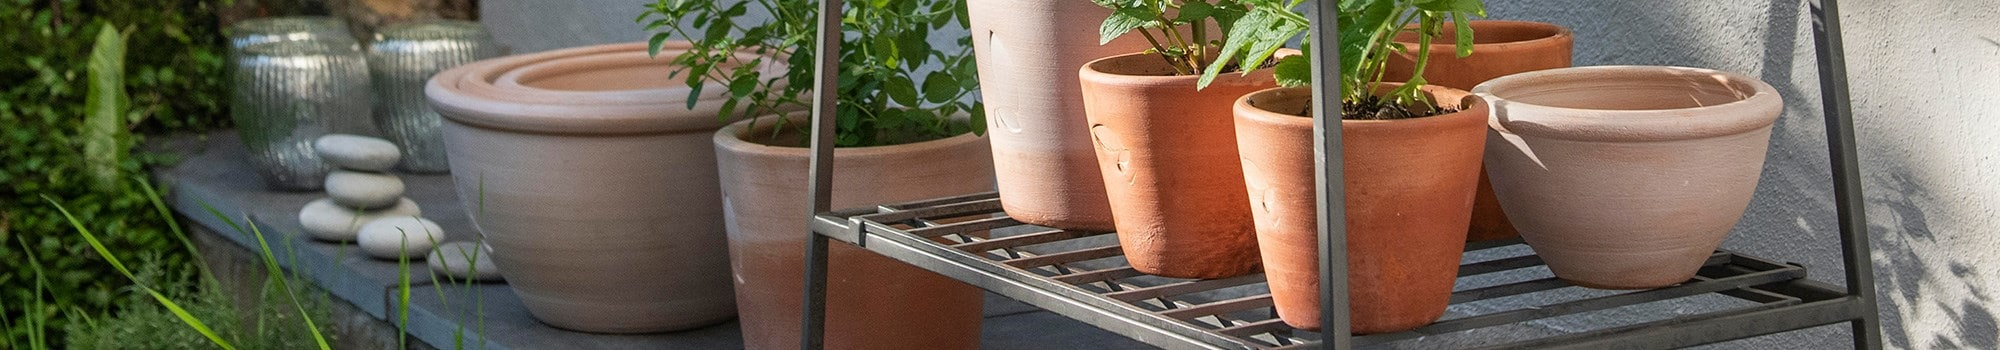 Pots hero - Crocus collection | Ideas for small spaces